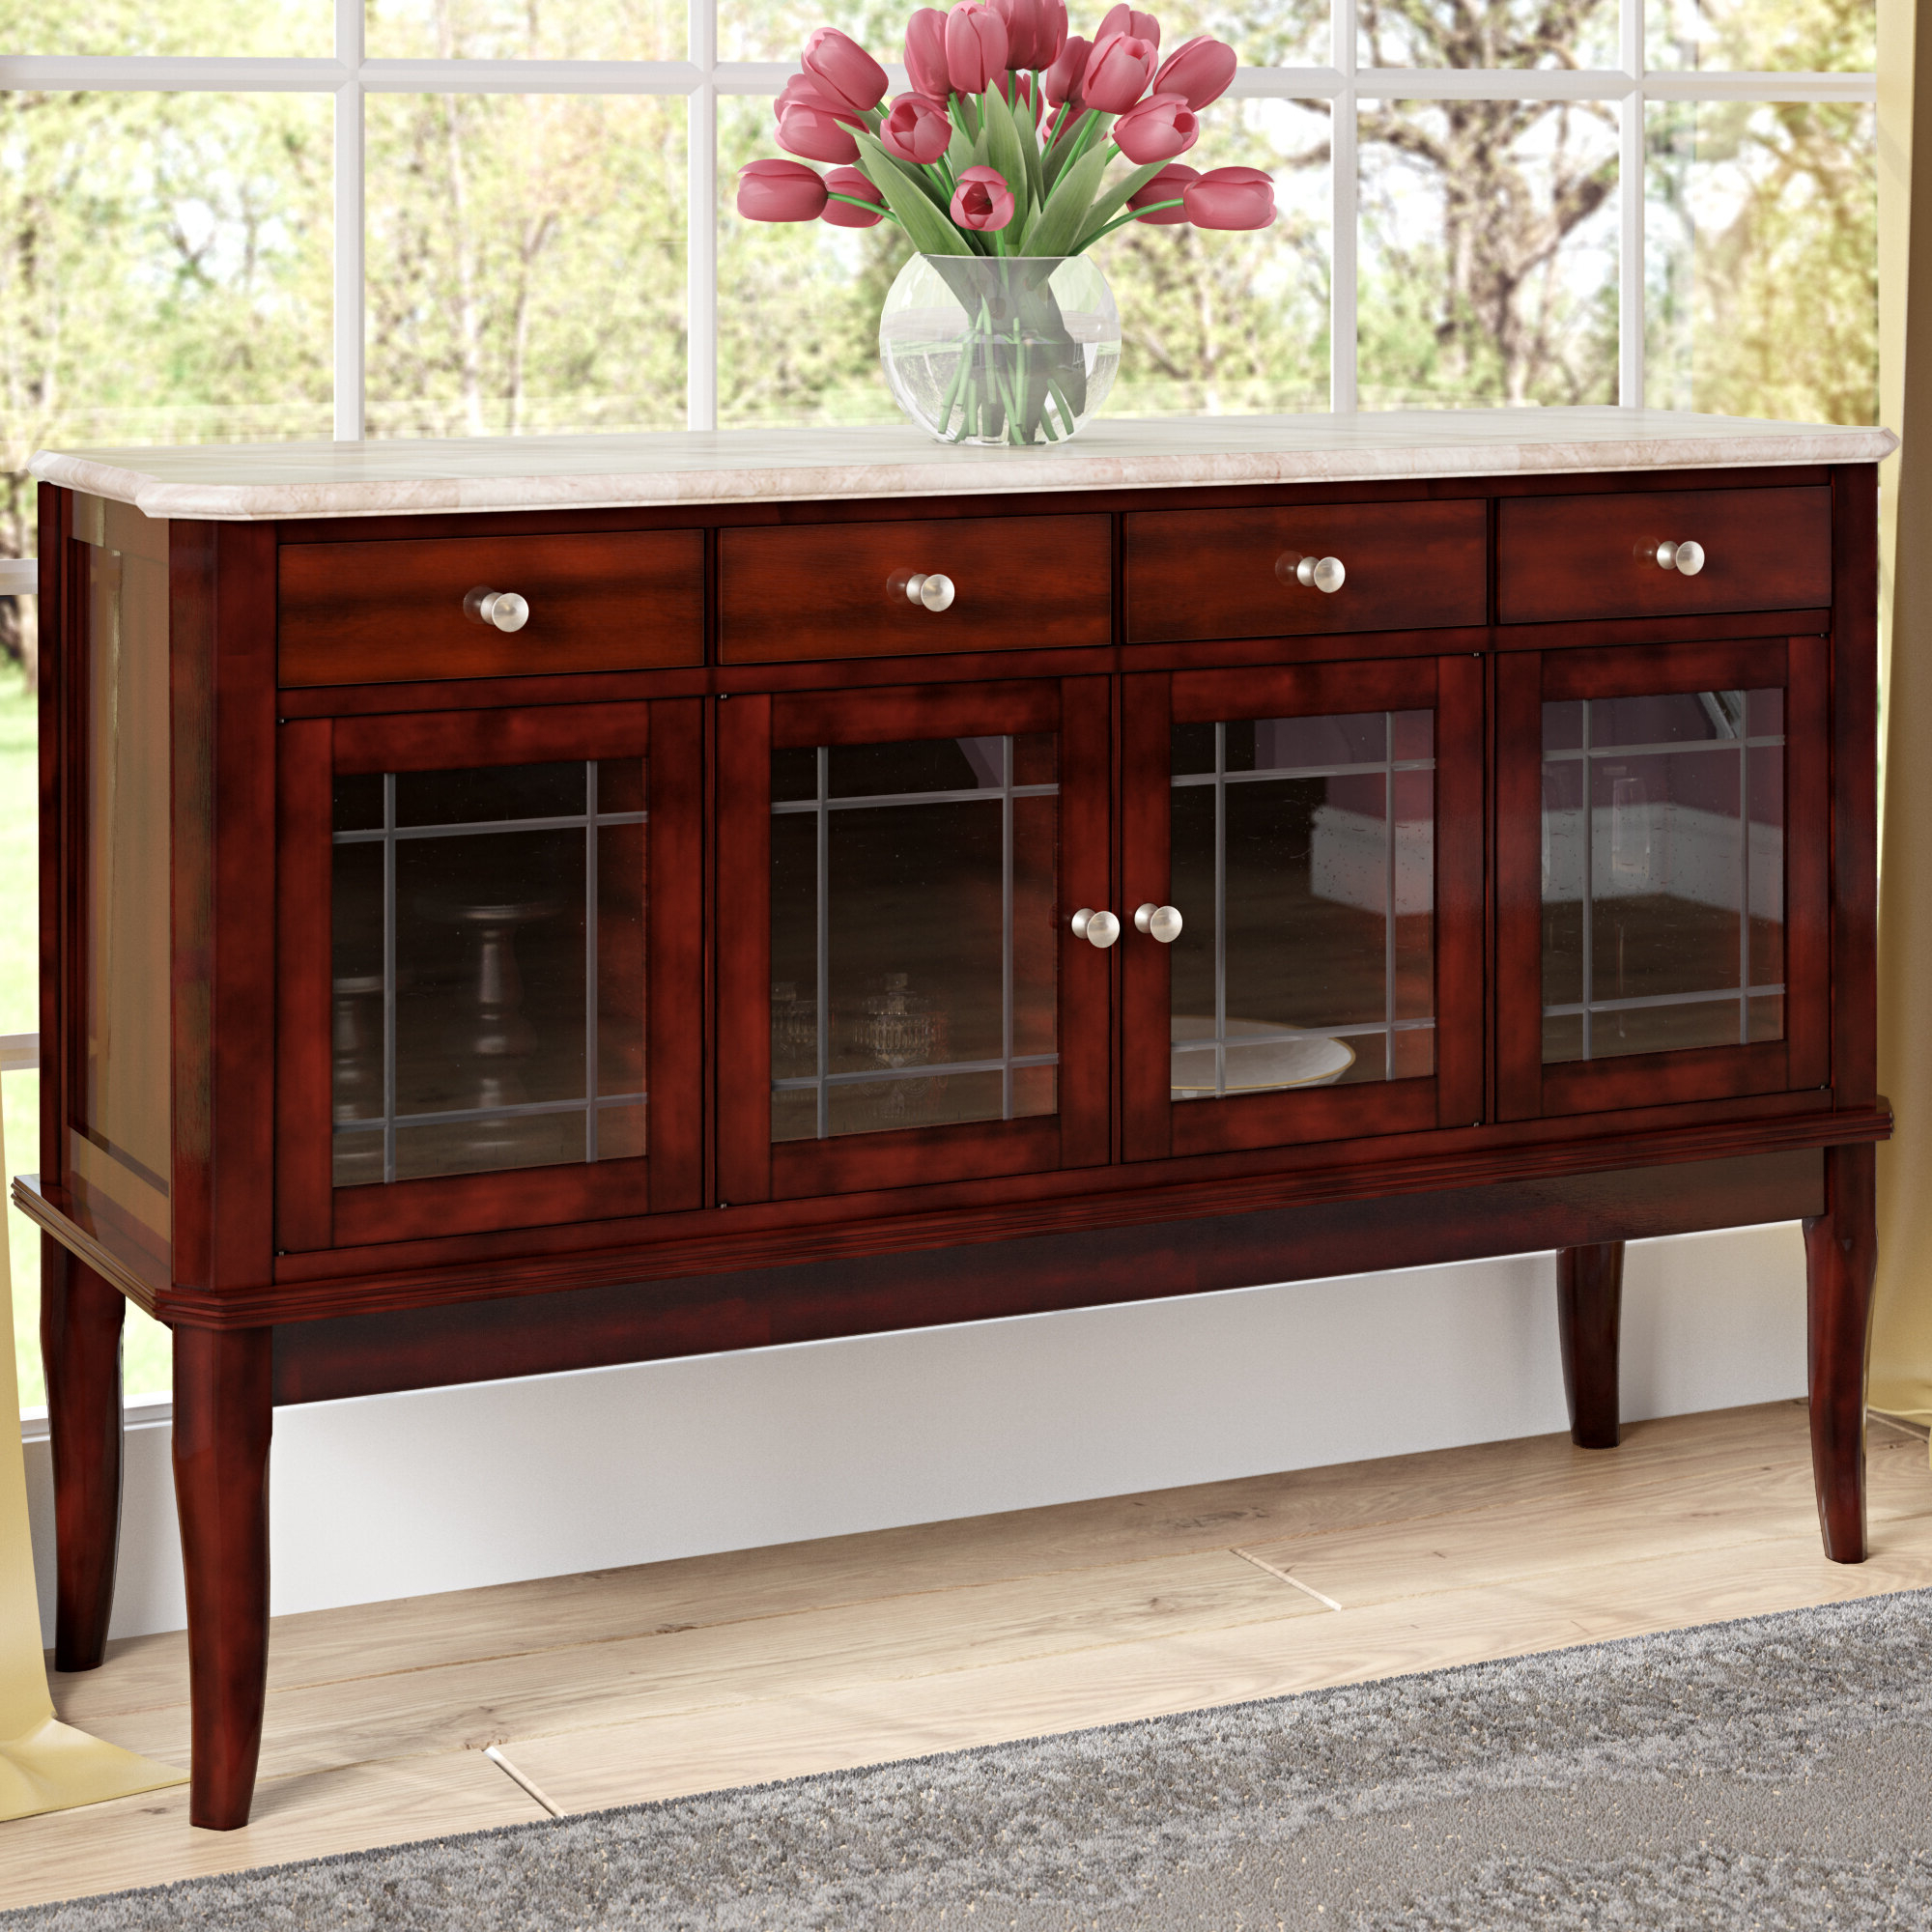 Marble & Granite Traditional Sideboards & Buffets You'll For Best And Newest Weinberger Sideboards (Gallery 13 of 20)